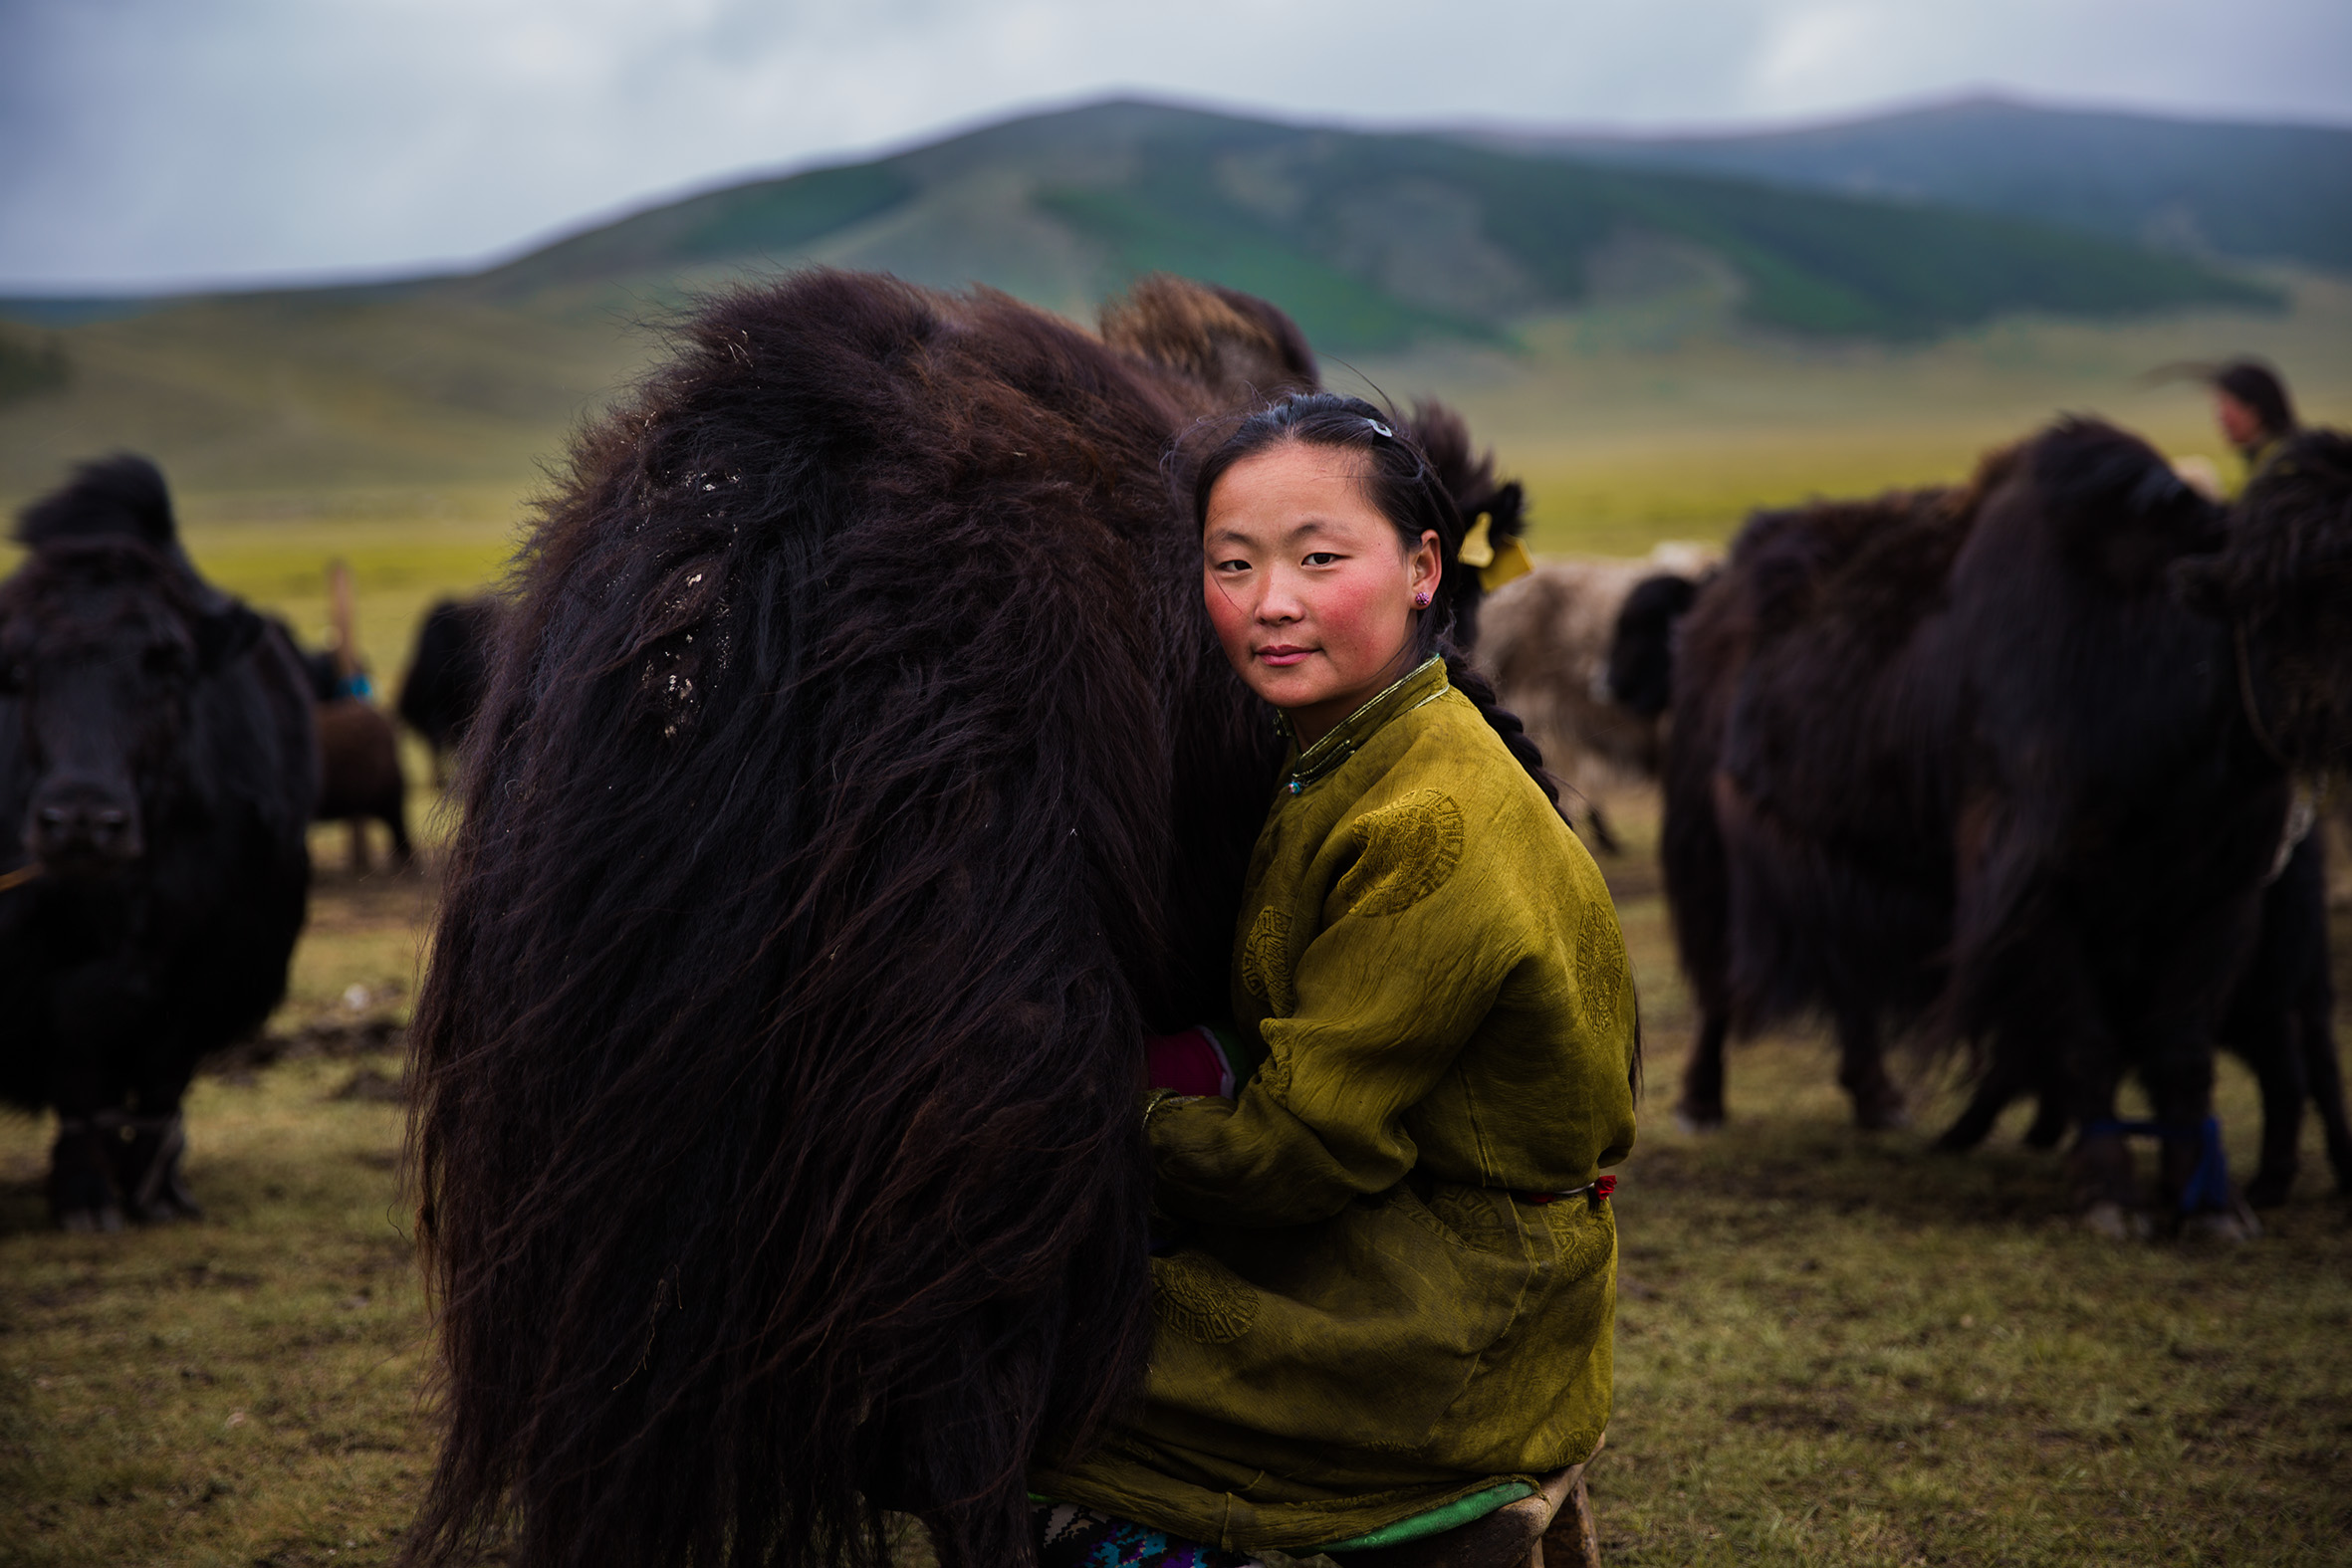 The Atlas of Beauty:' Women from around the world | CNN Travel